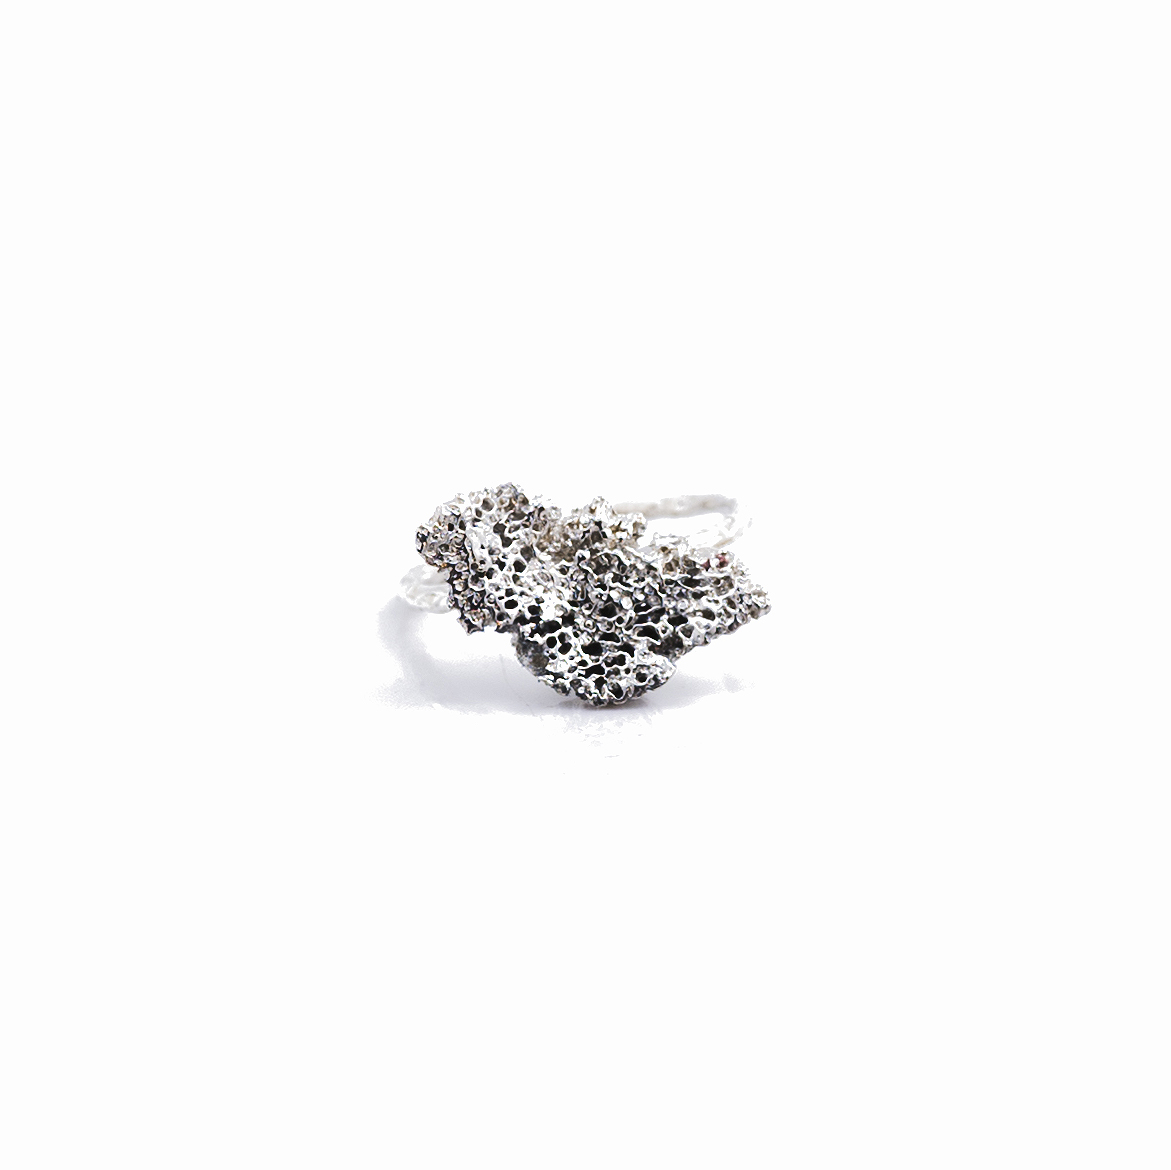 Small Island Ring | Sterling silver.